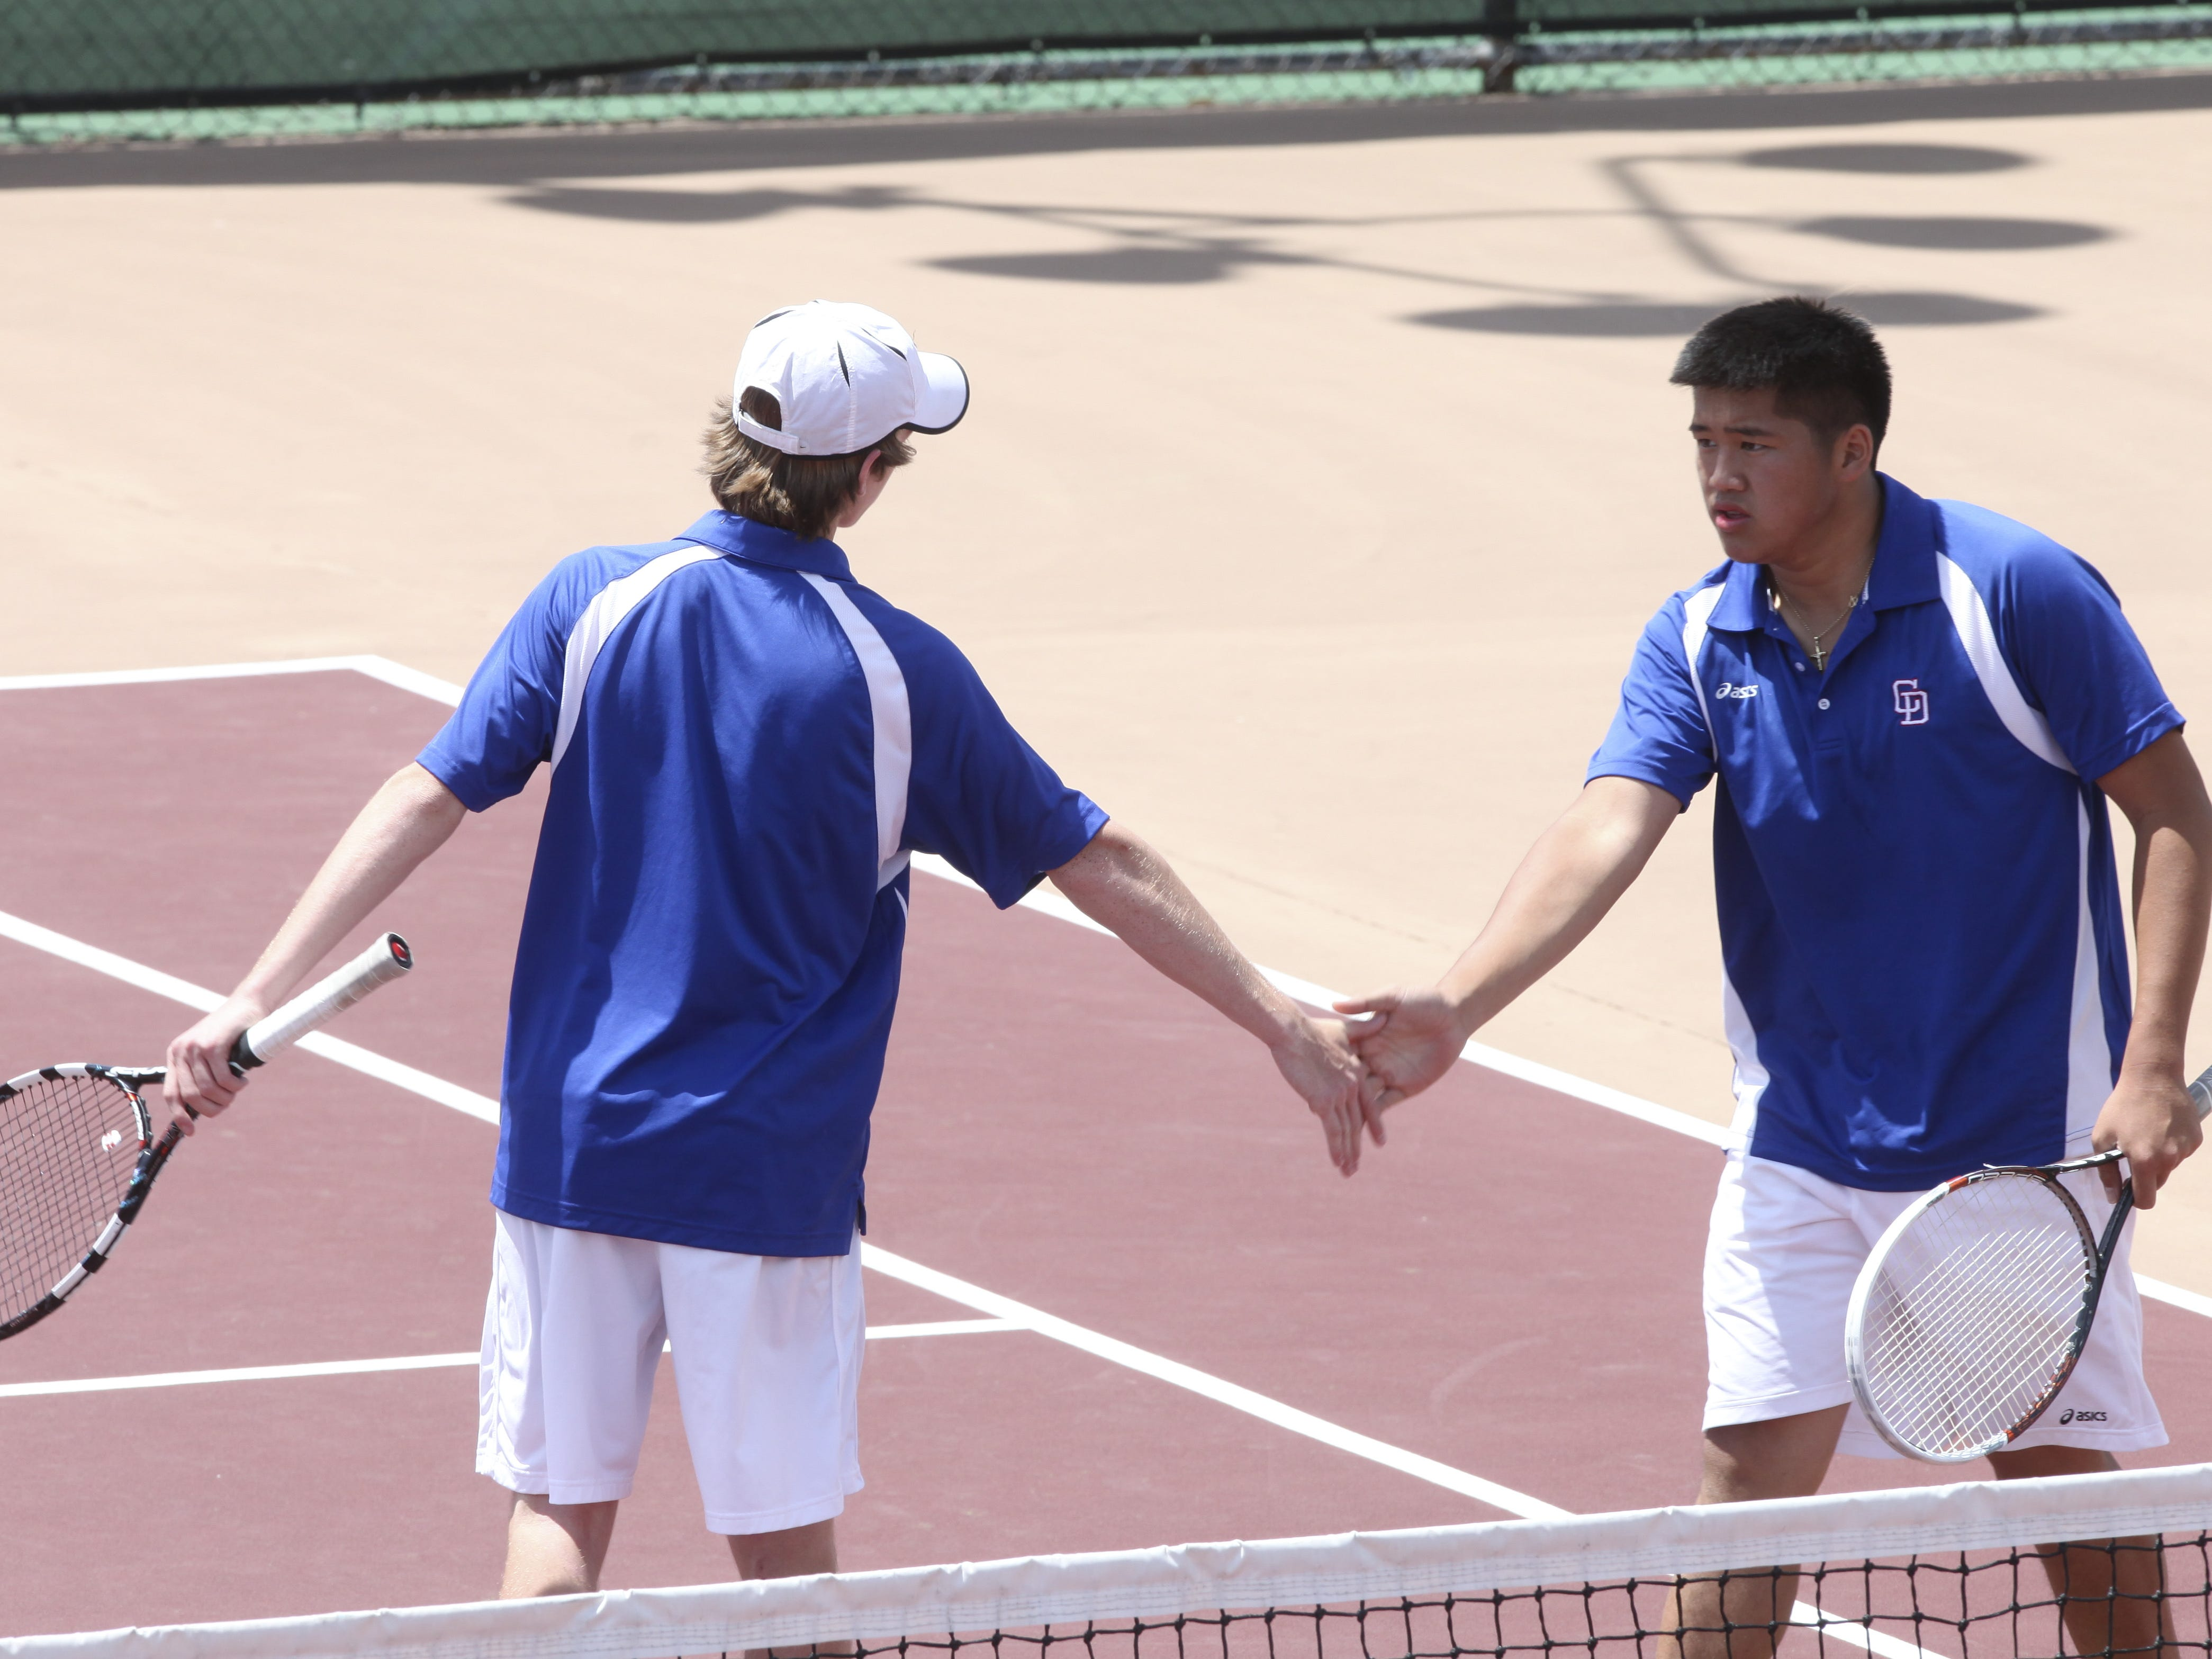 Players will compete in the LHSAA Tennis State Championships at the University of Louisiana at Monroe's Heard Stadium beginning Monday.